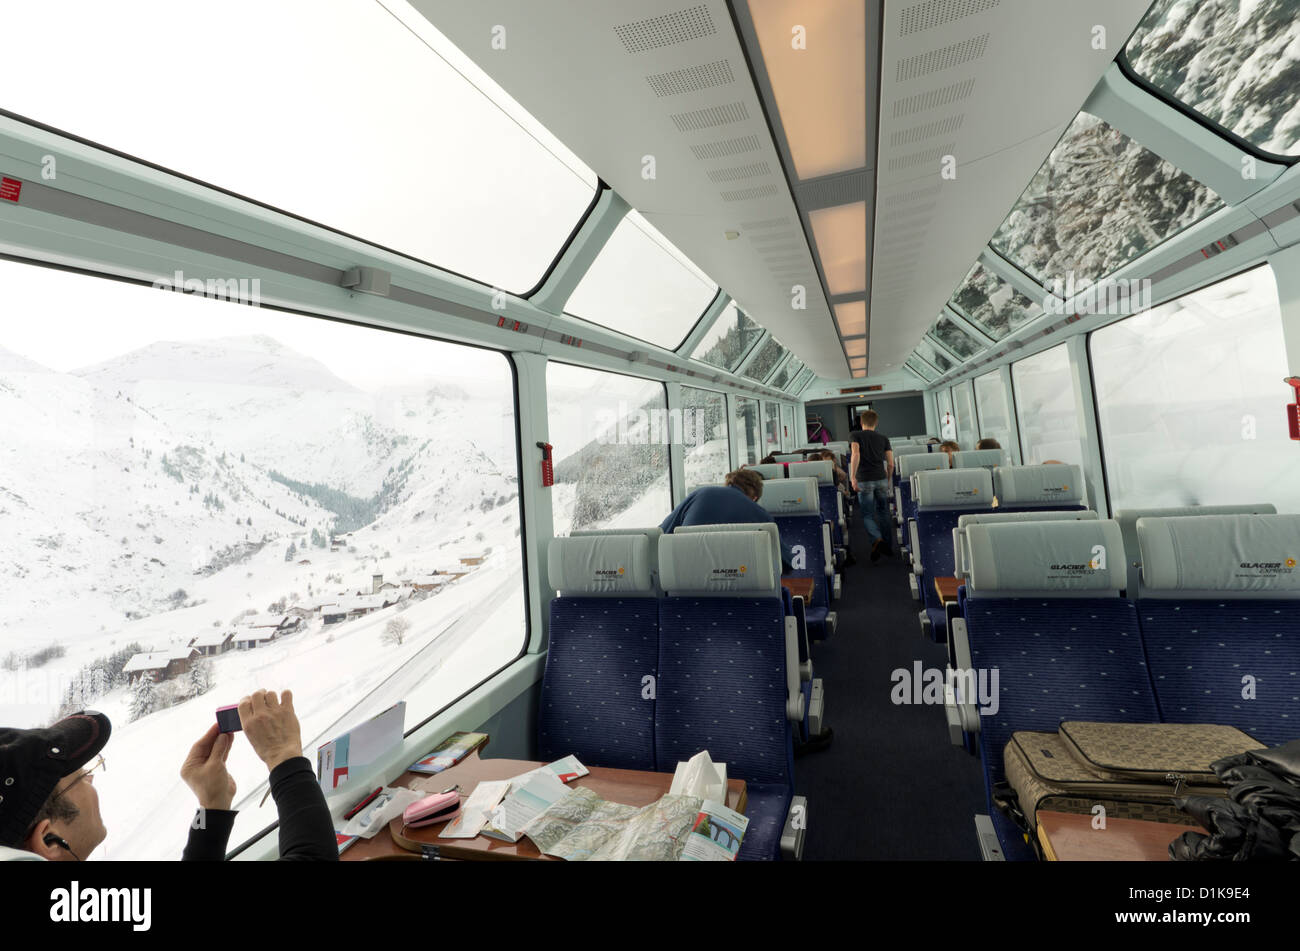 Passengers on the Glacier Express Train look out onto the mountains near Oberwald, Switzerland. - Stock Image